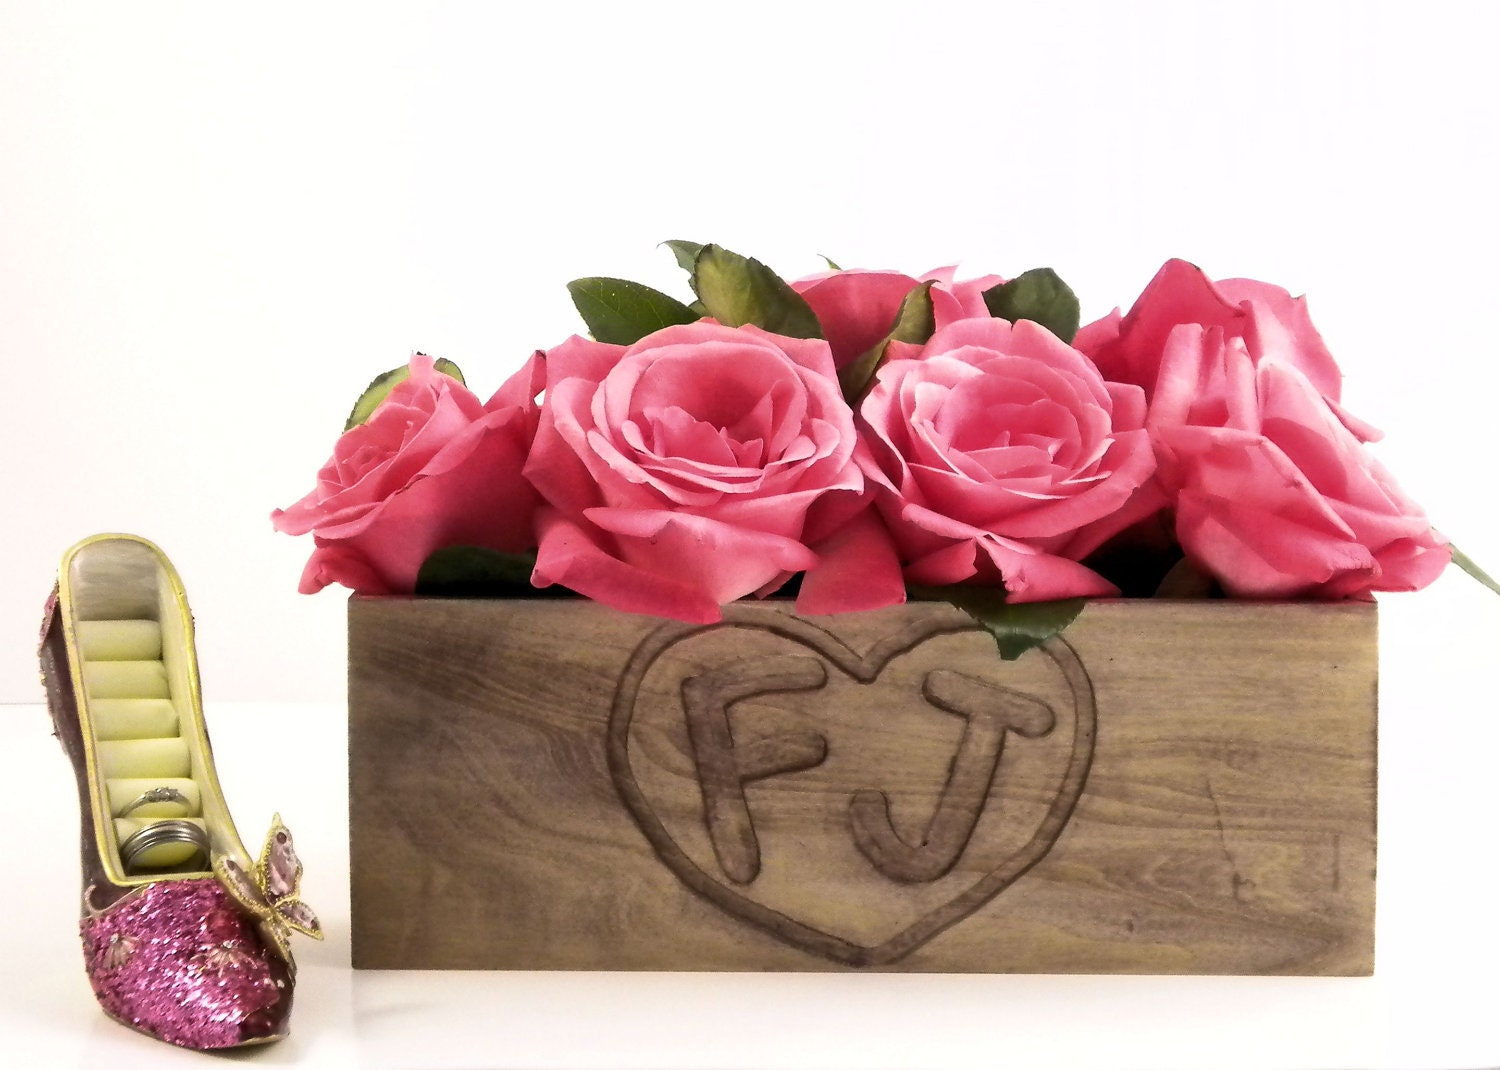 Wood flower box for Country/rustic wedding table Centerpieces, Wooden Heart Box with Engraving - WoodenEnhancements